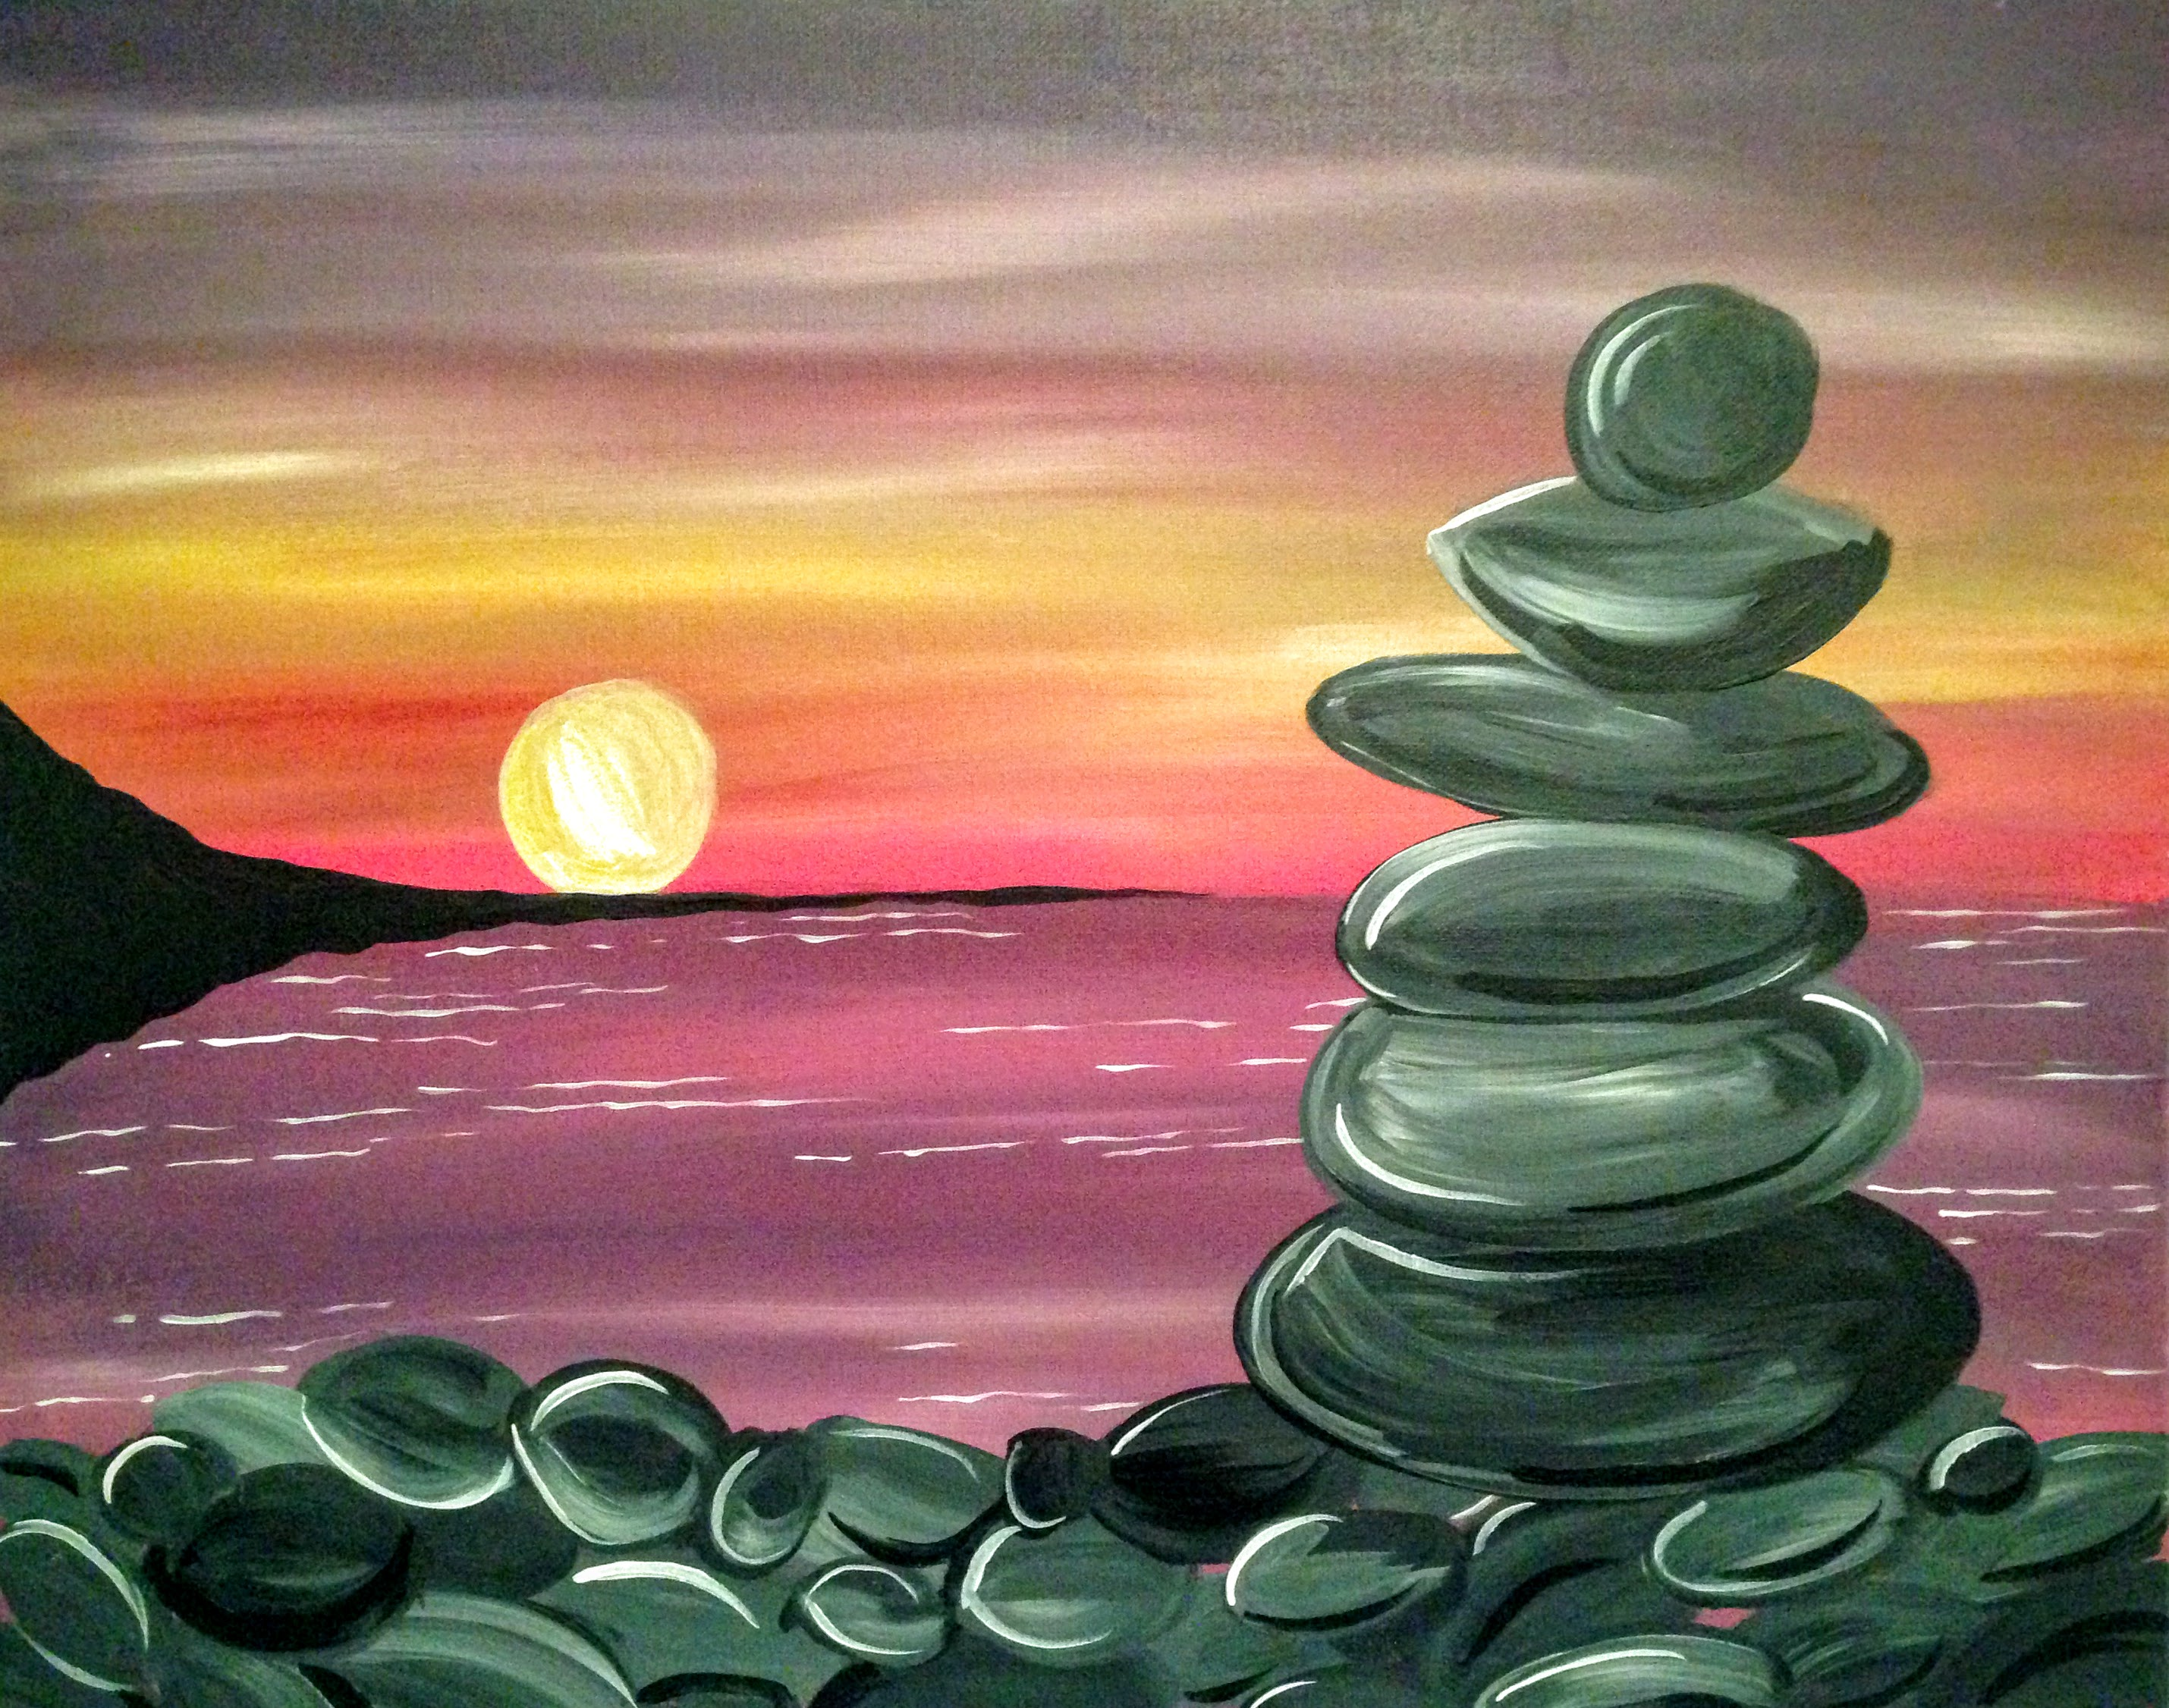 A Peaceful Nite paint nite project by Yaymaker